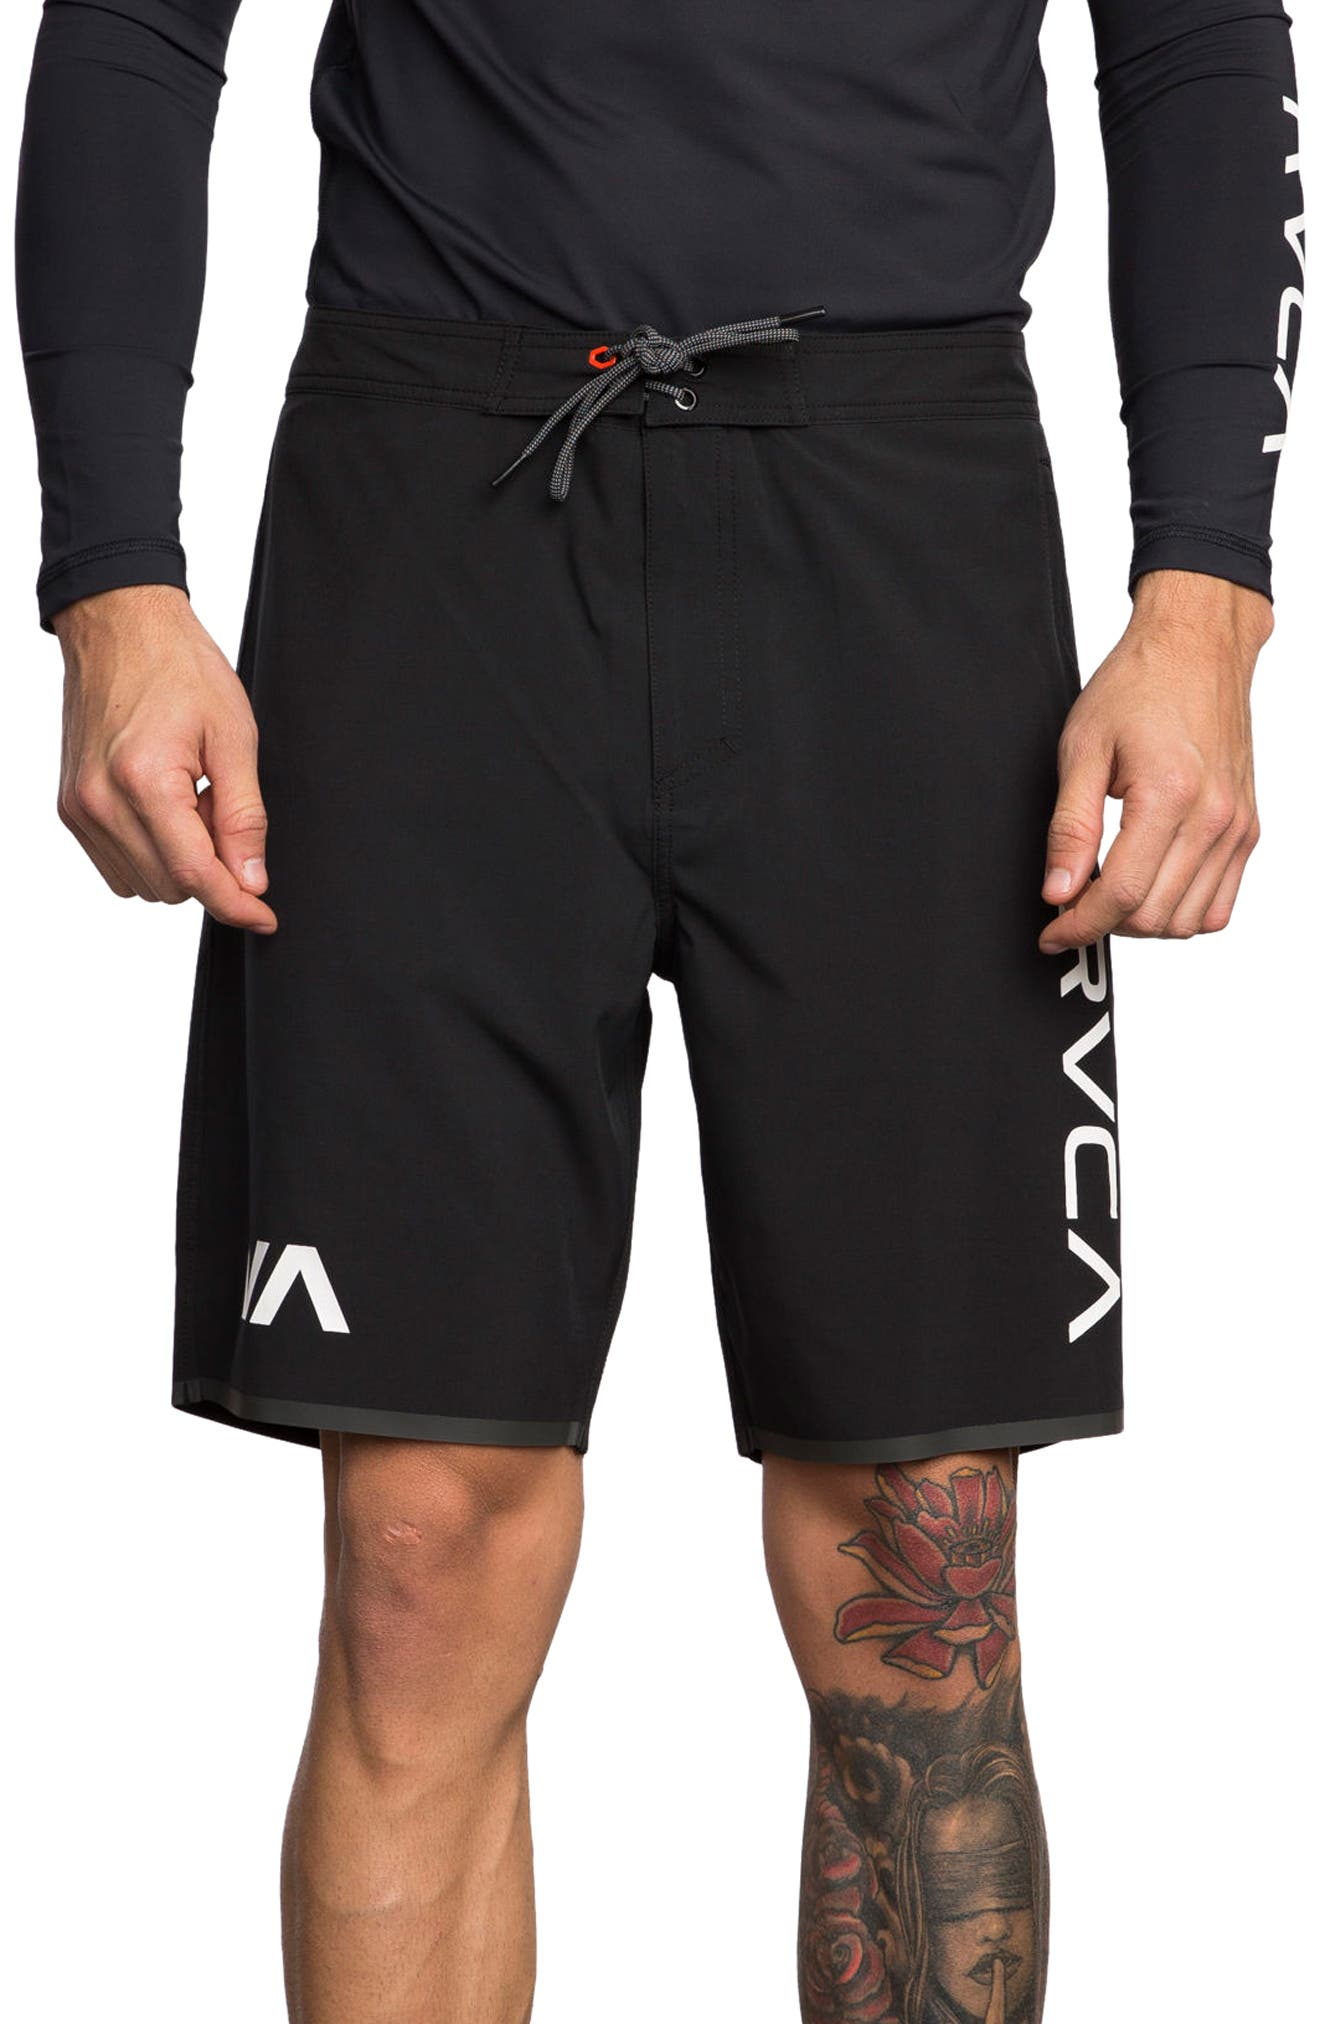 Alternate Image 1 Selected - RVCA Staff III Dual Layer Performance Shorts